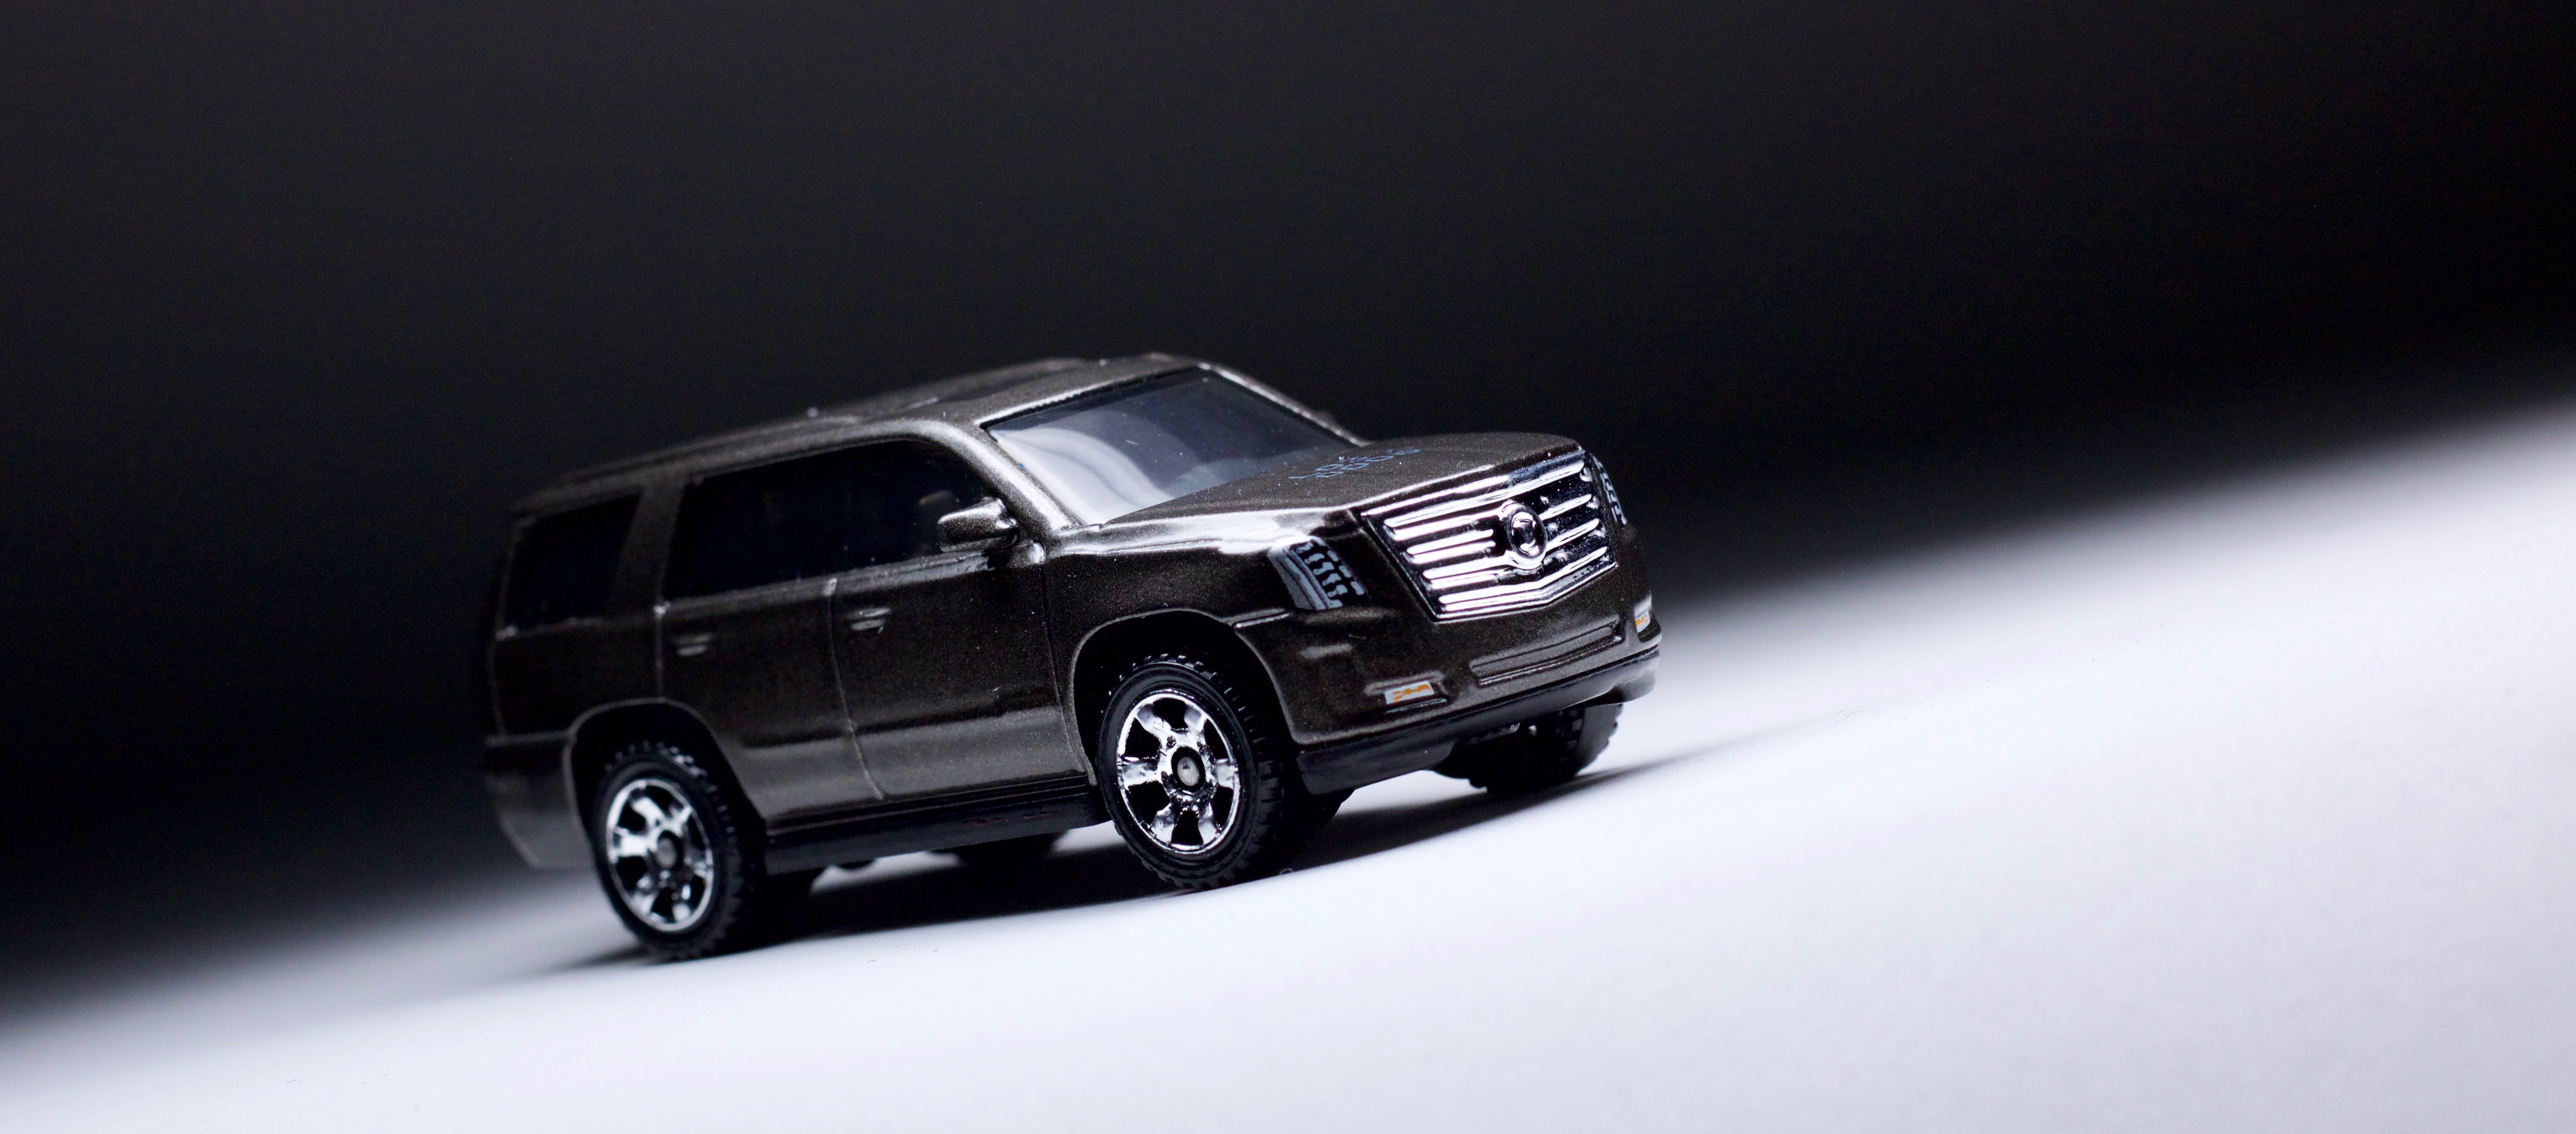 hybrid escalade speed top hy review cadillac cars accessories